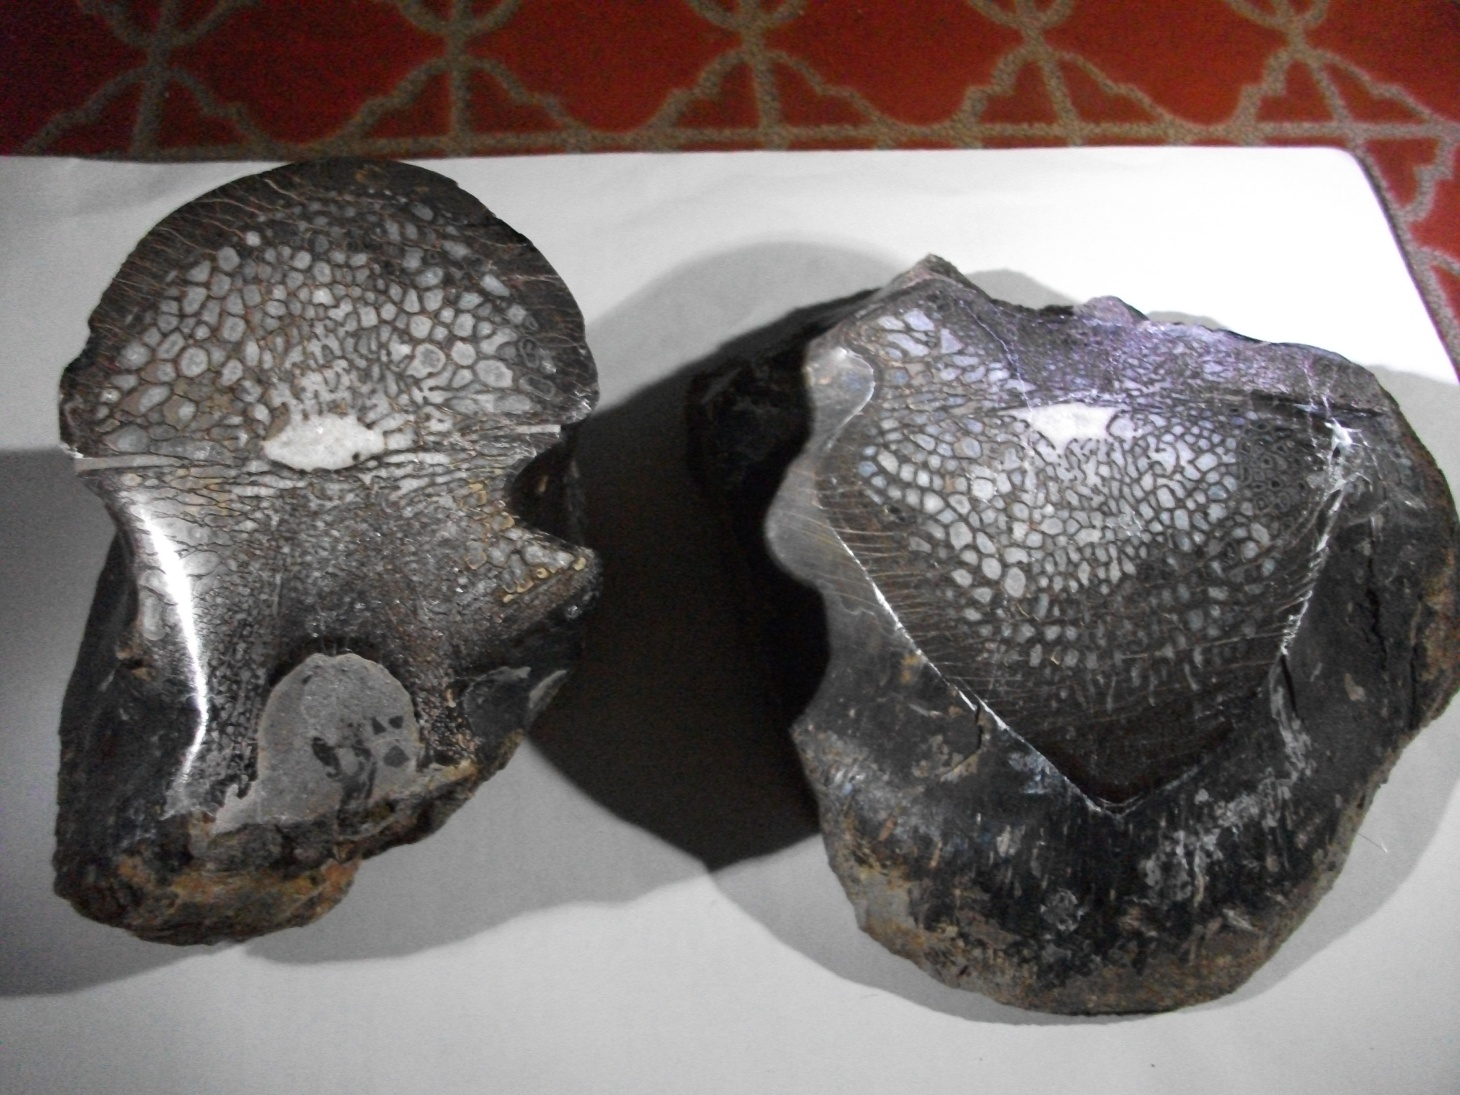 Allosaurus Dinosaur Split Vertebra by Thomas Peace c.2013